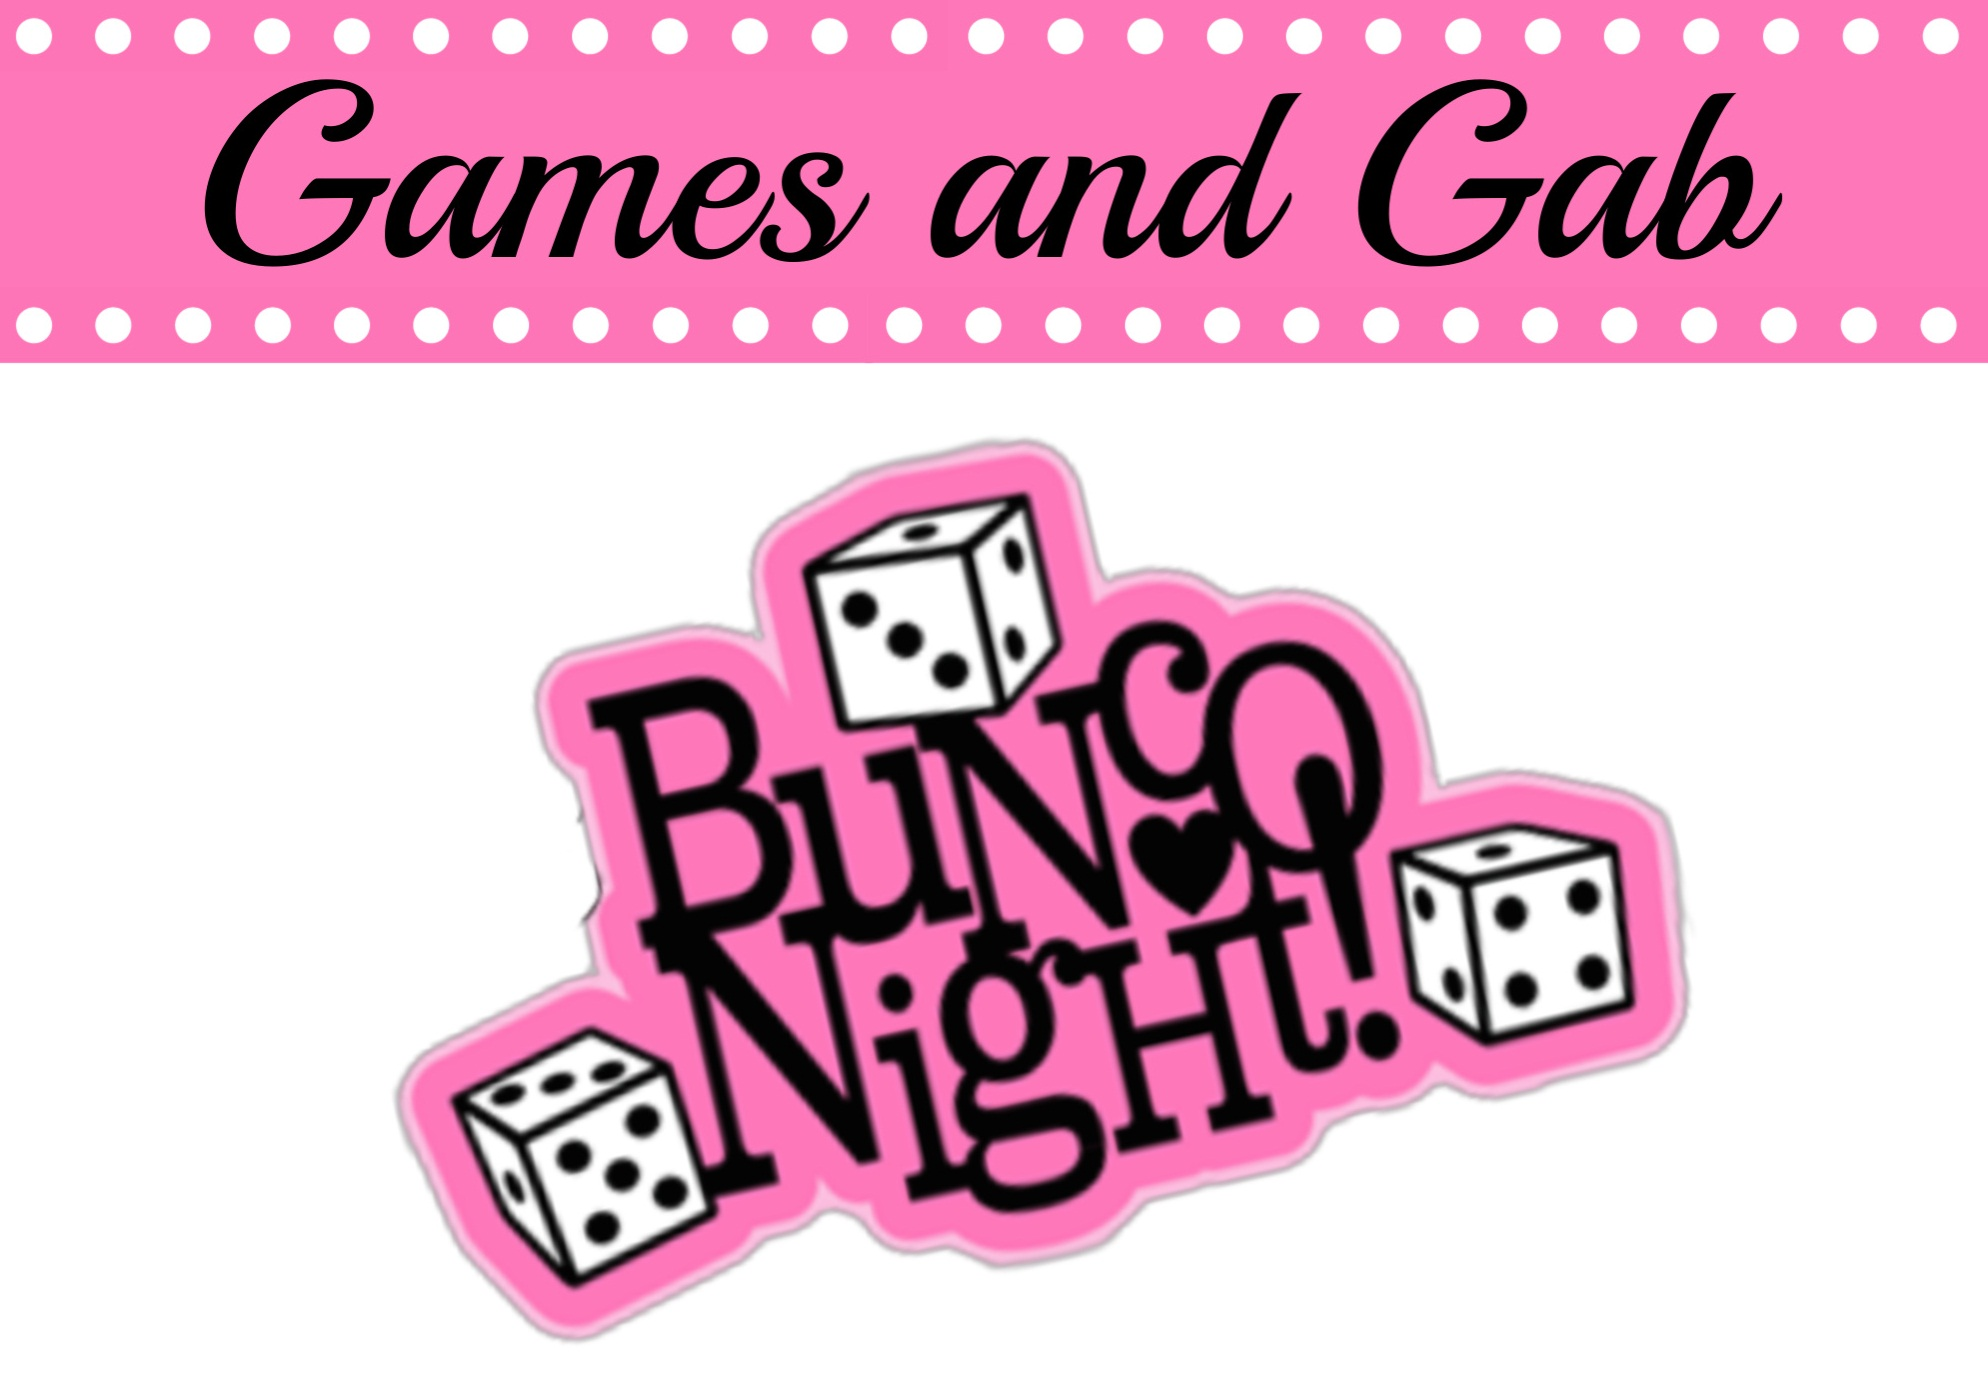 games and gab bunco generic event image image